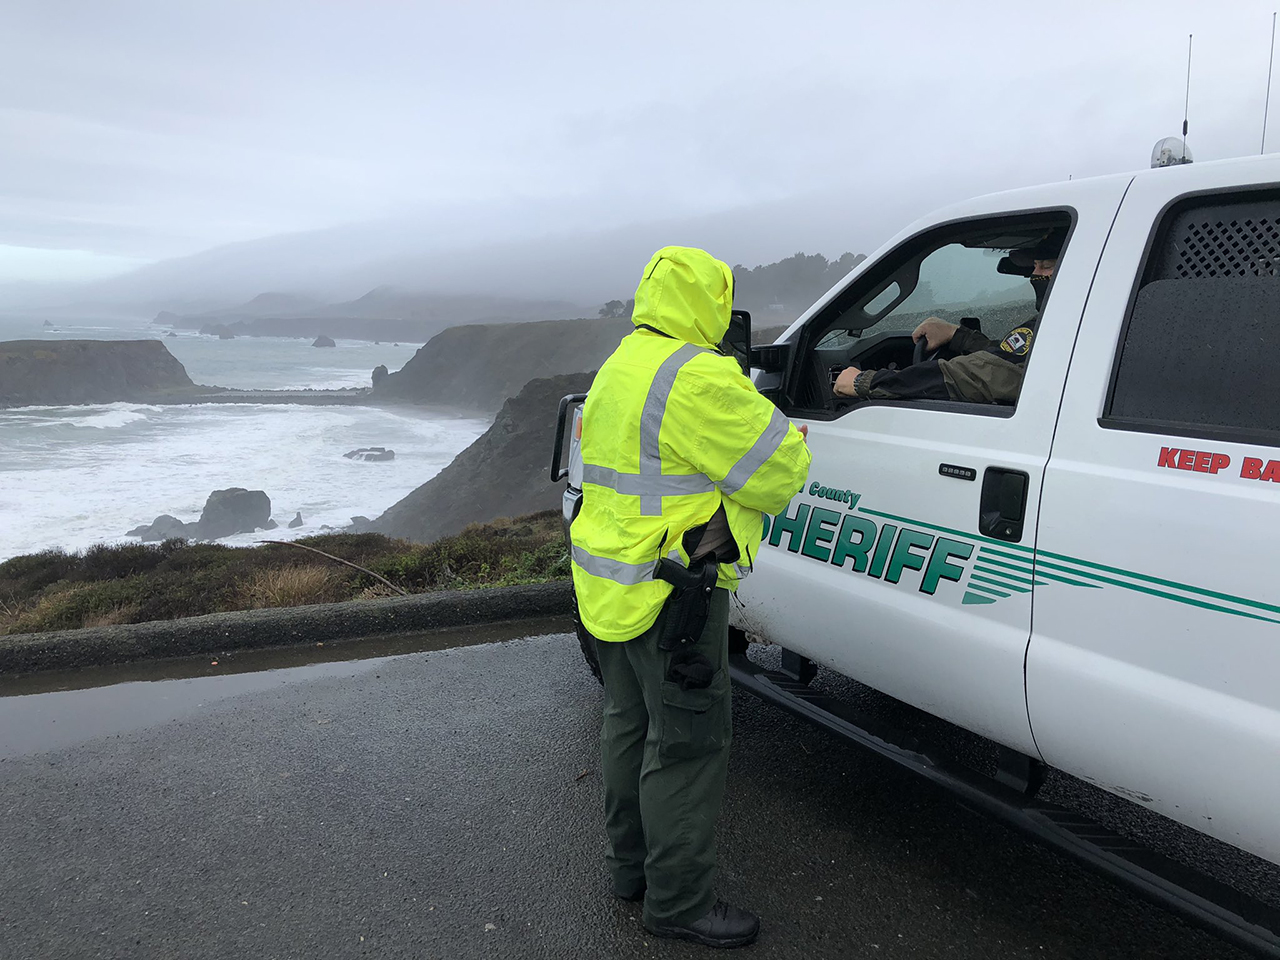 Sonoma County Sheriff personnel on Jan. 4 near Blind Beach, where Michael Wyman drowned trying to save his two children. (Photo/Twitter-San Mateo County Sheriff's Office)